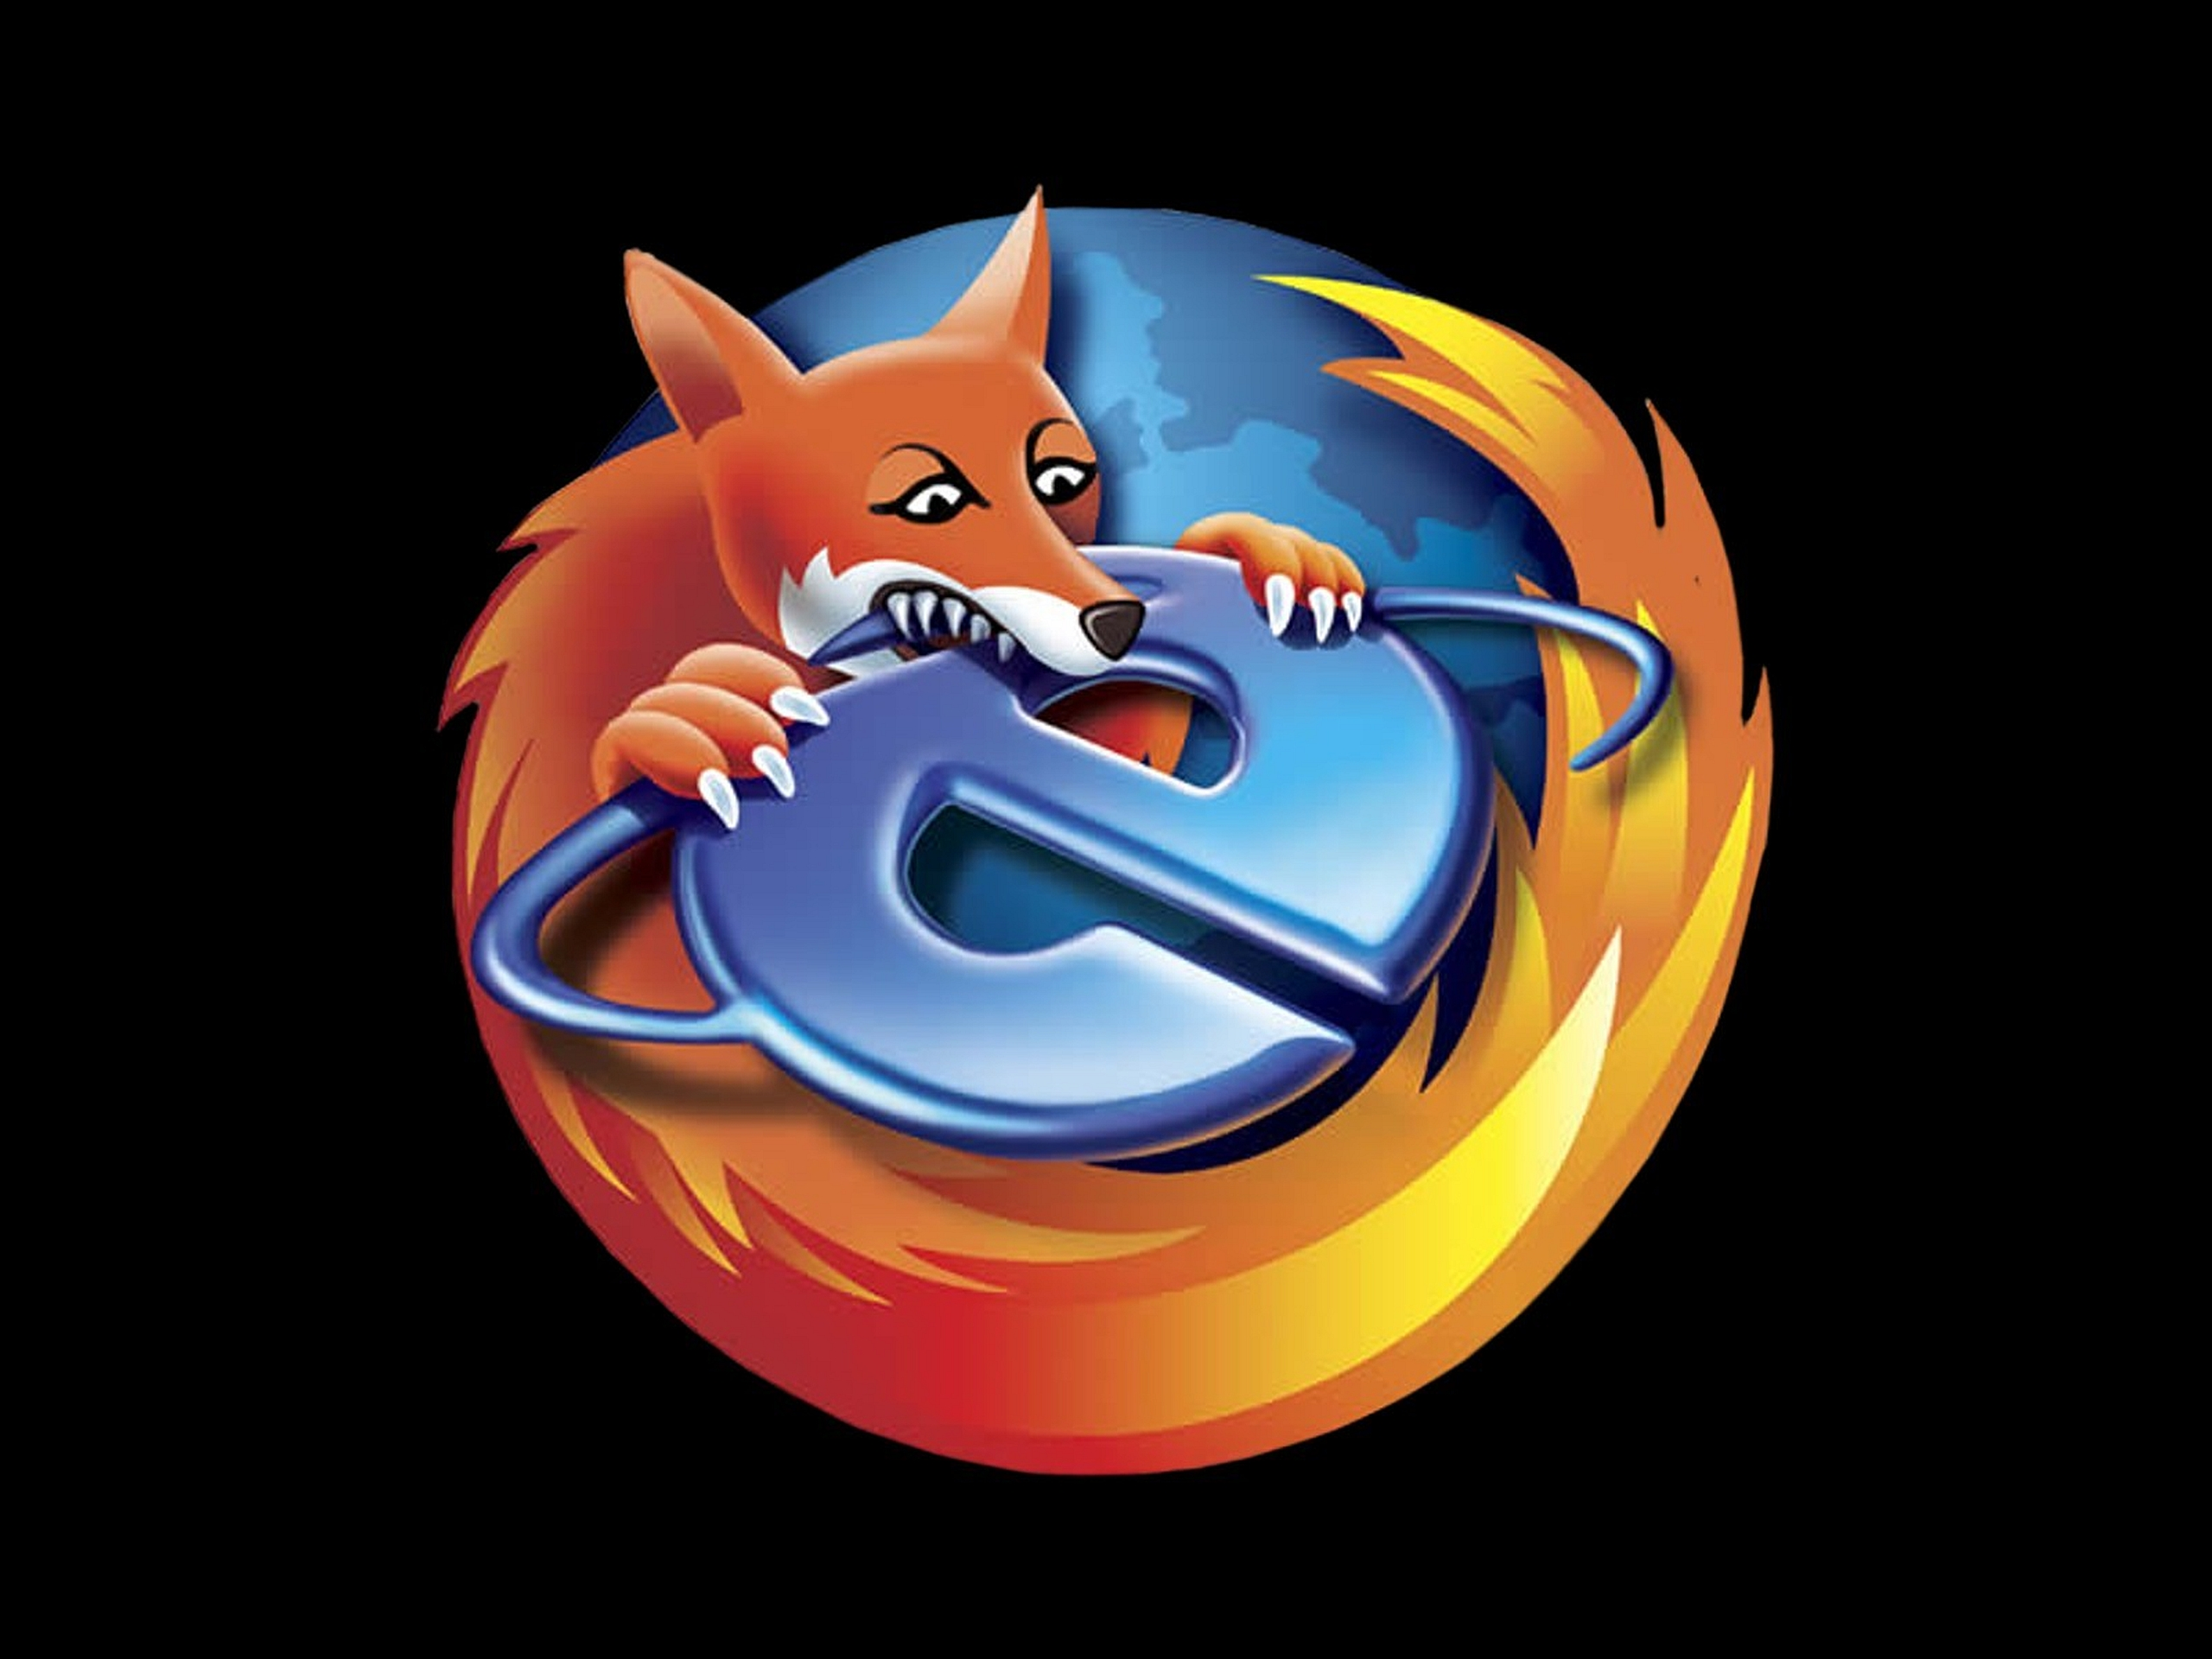 Firefox hd wallpaper background image 2560x1920 id - How to change firefox background image ...